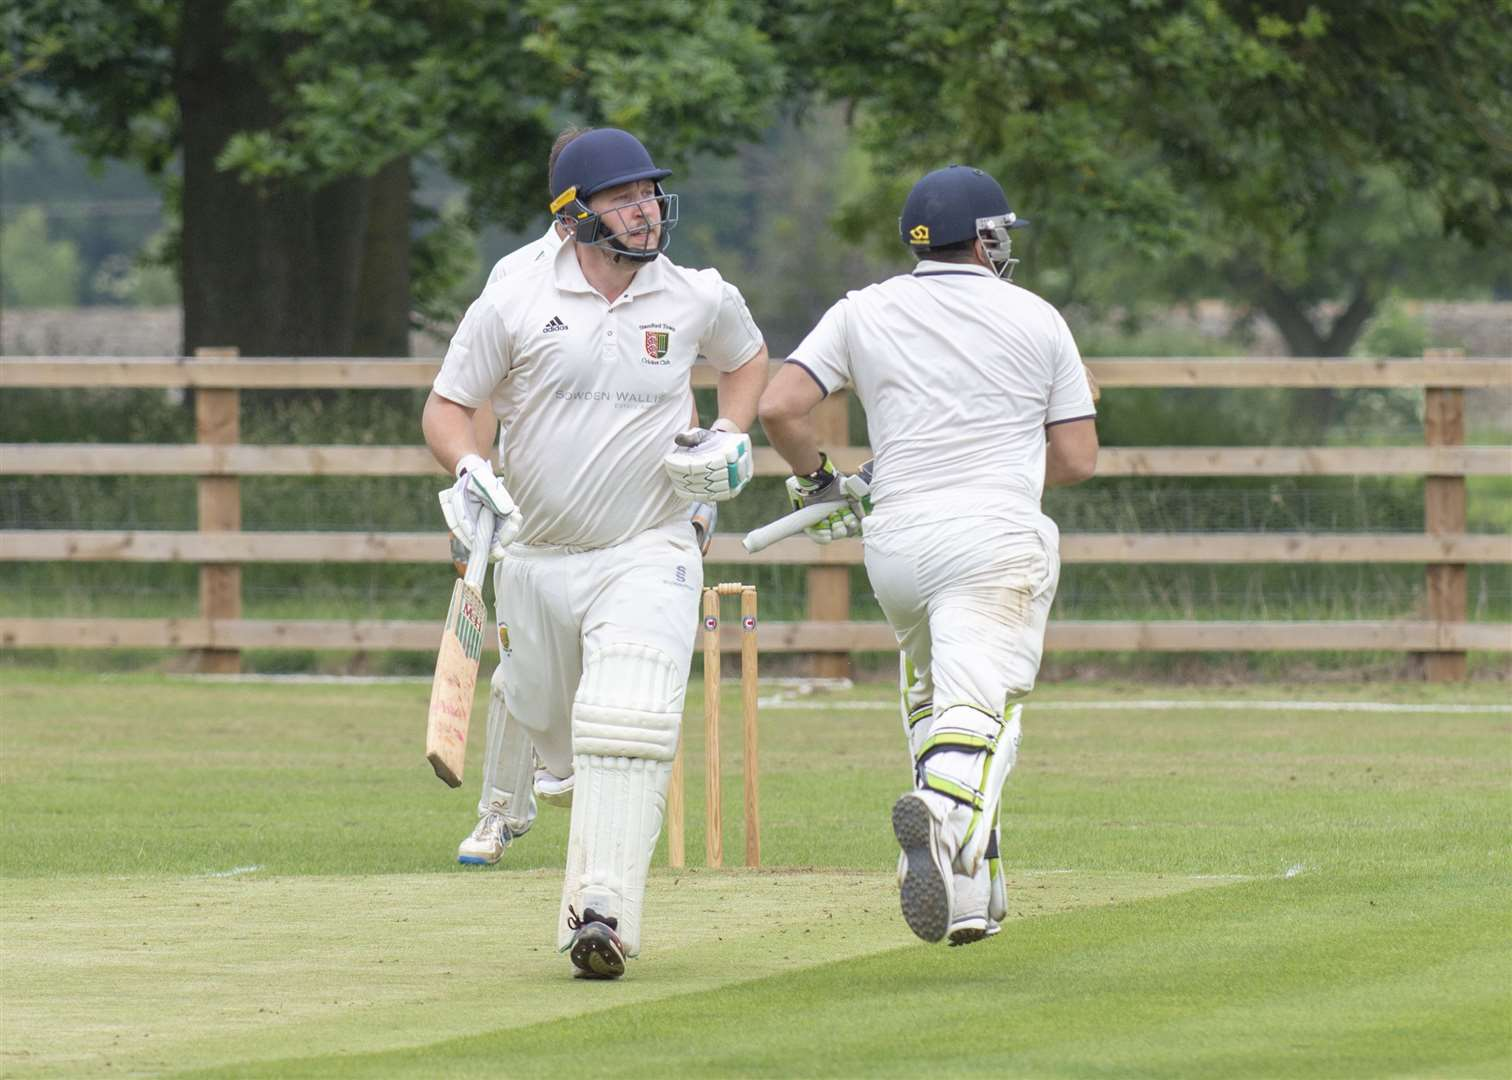 Andrew Hulme hit 74 for Stamford on Saturday. (11643355)